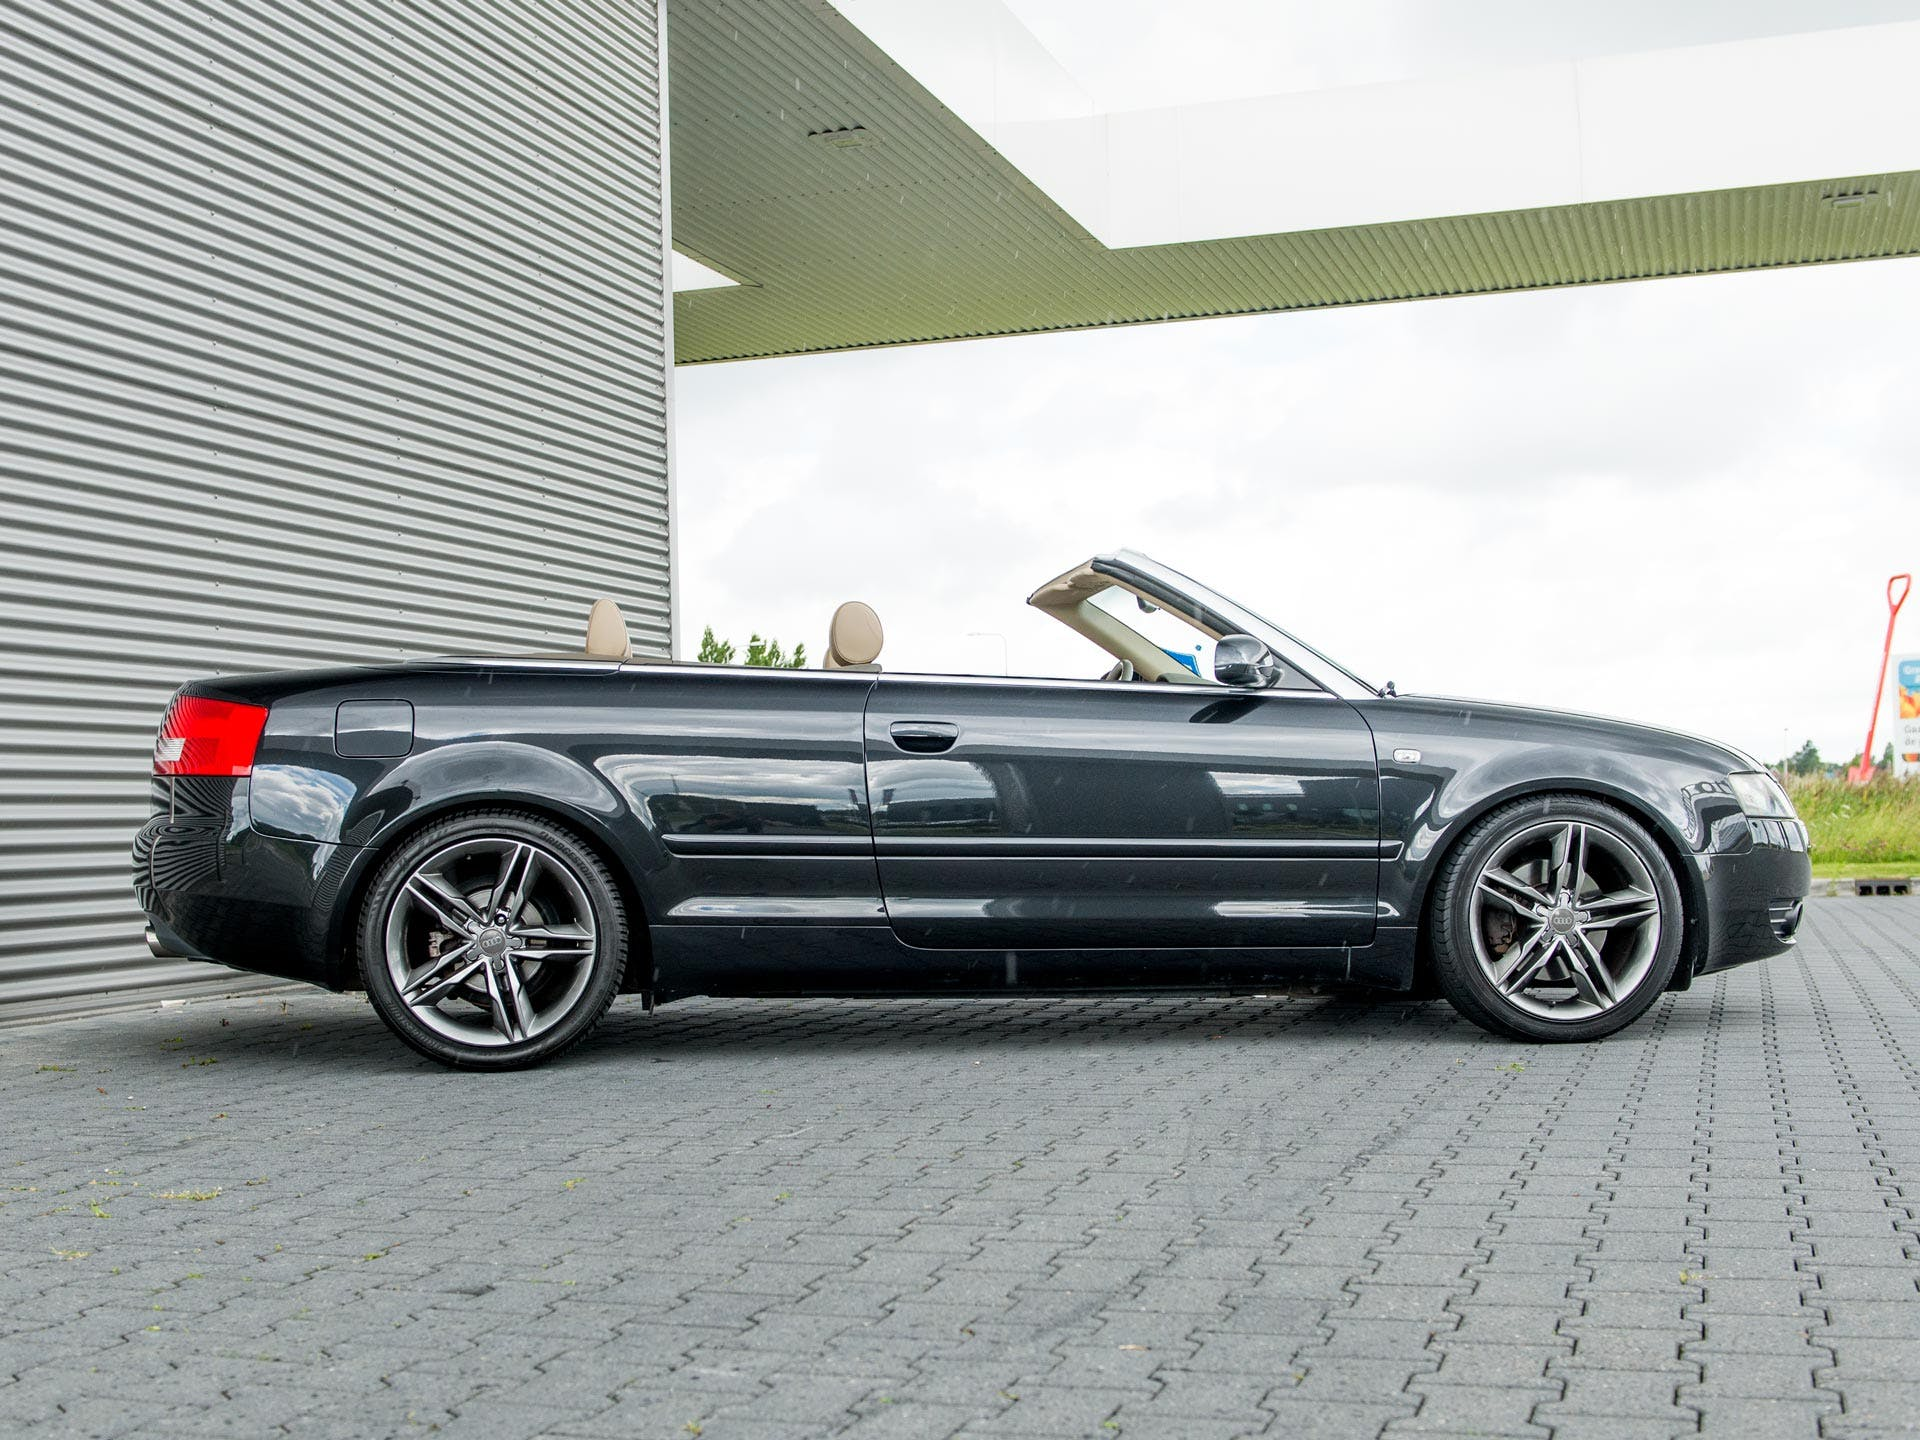 Tweedehands Audi A4 Cabriolet 2003 occasion